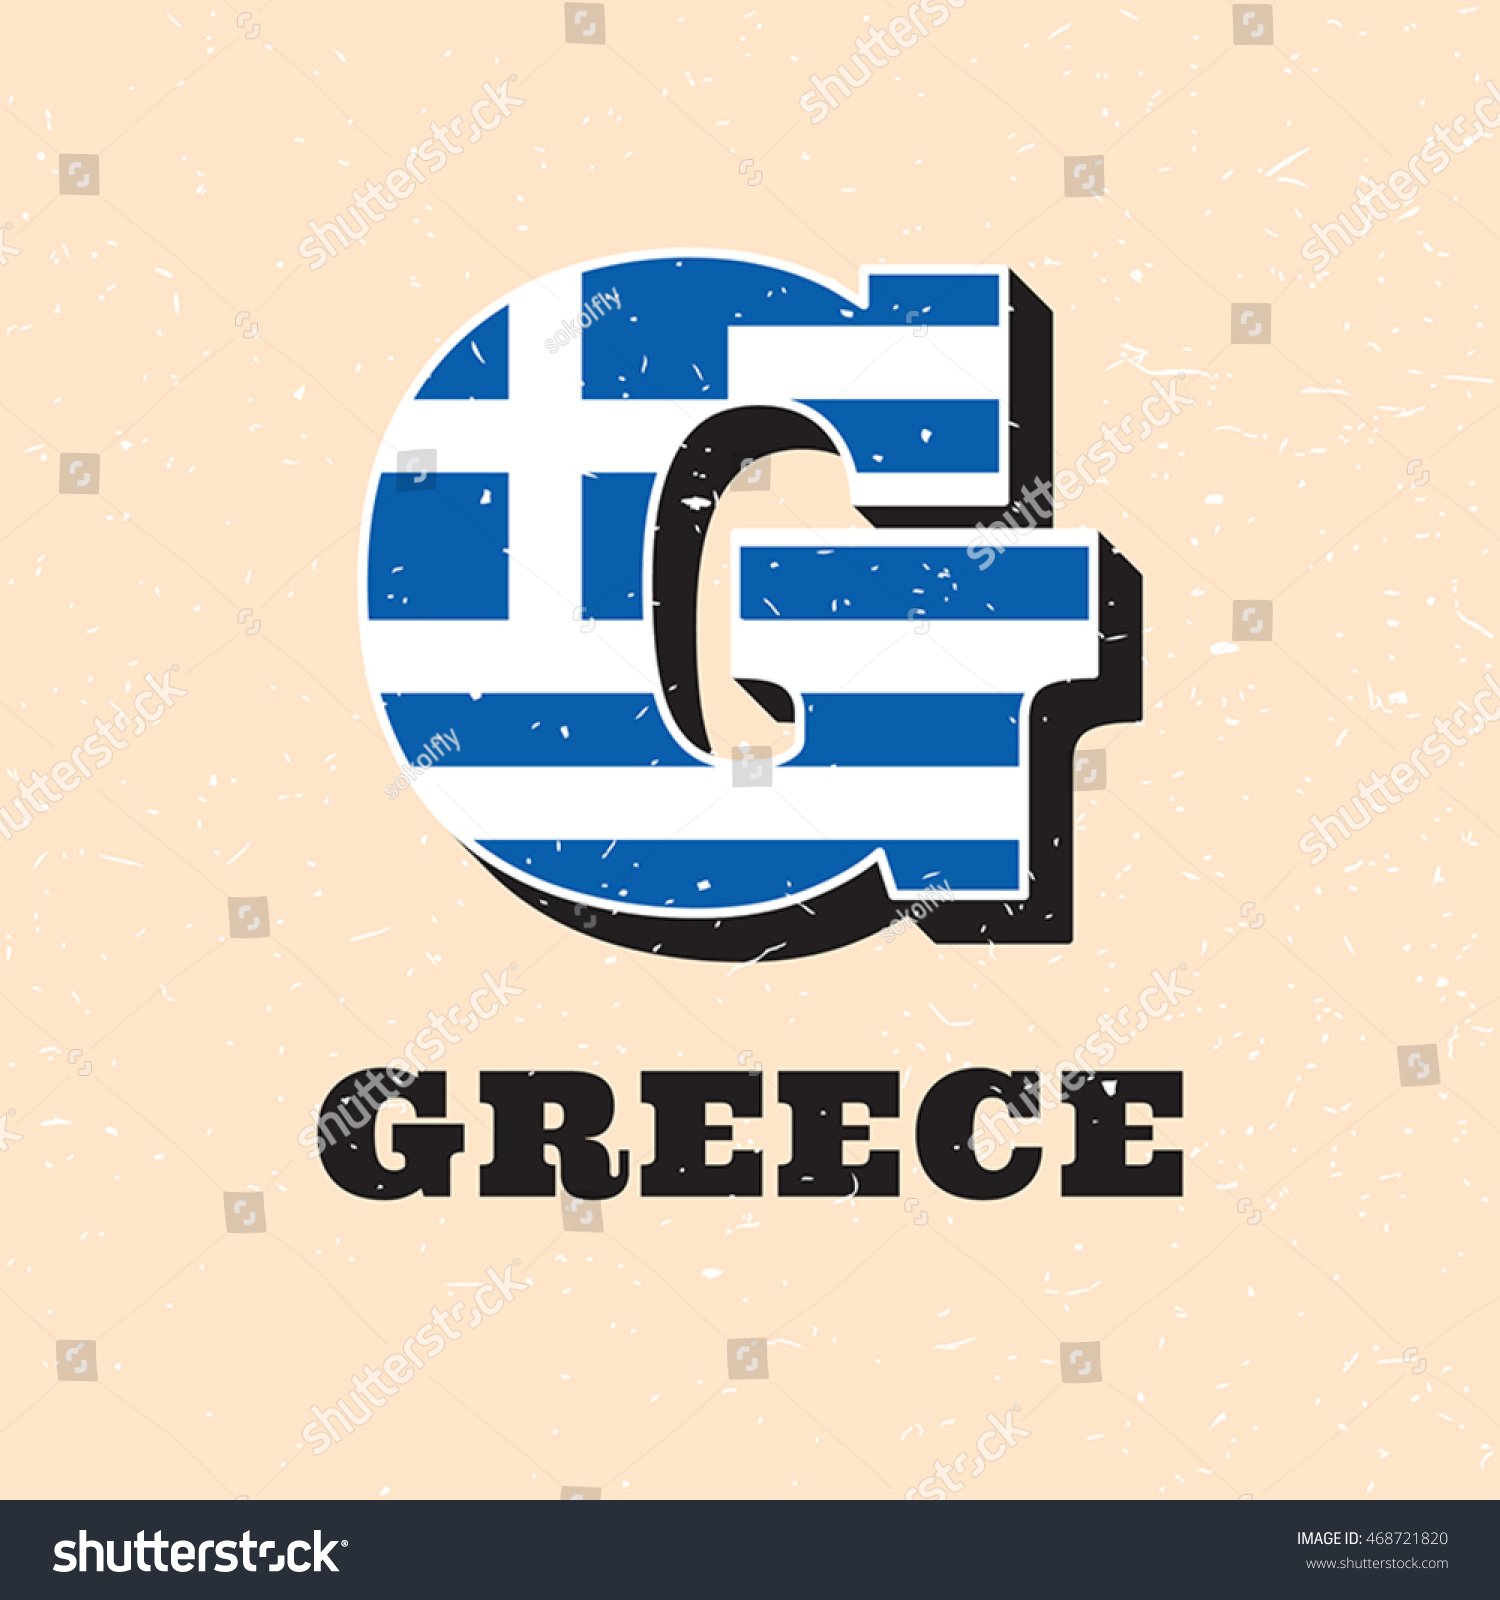 Vector letter g logo design greek stock vector 468721820 vector letter g logo design for greek flag greece national icon template worldwide country biocorpaavc Image collections